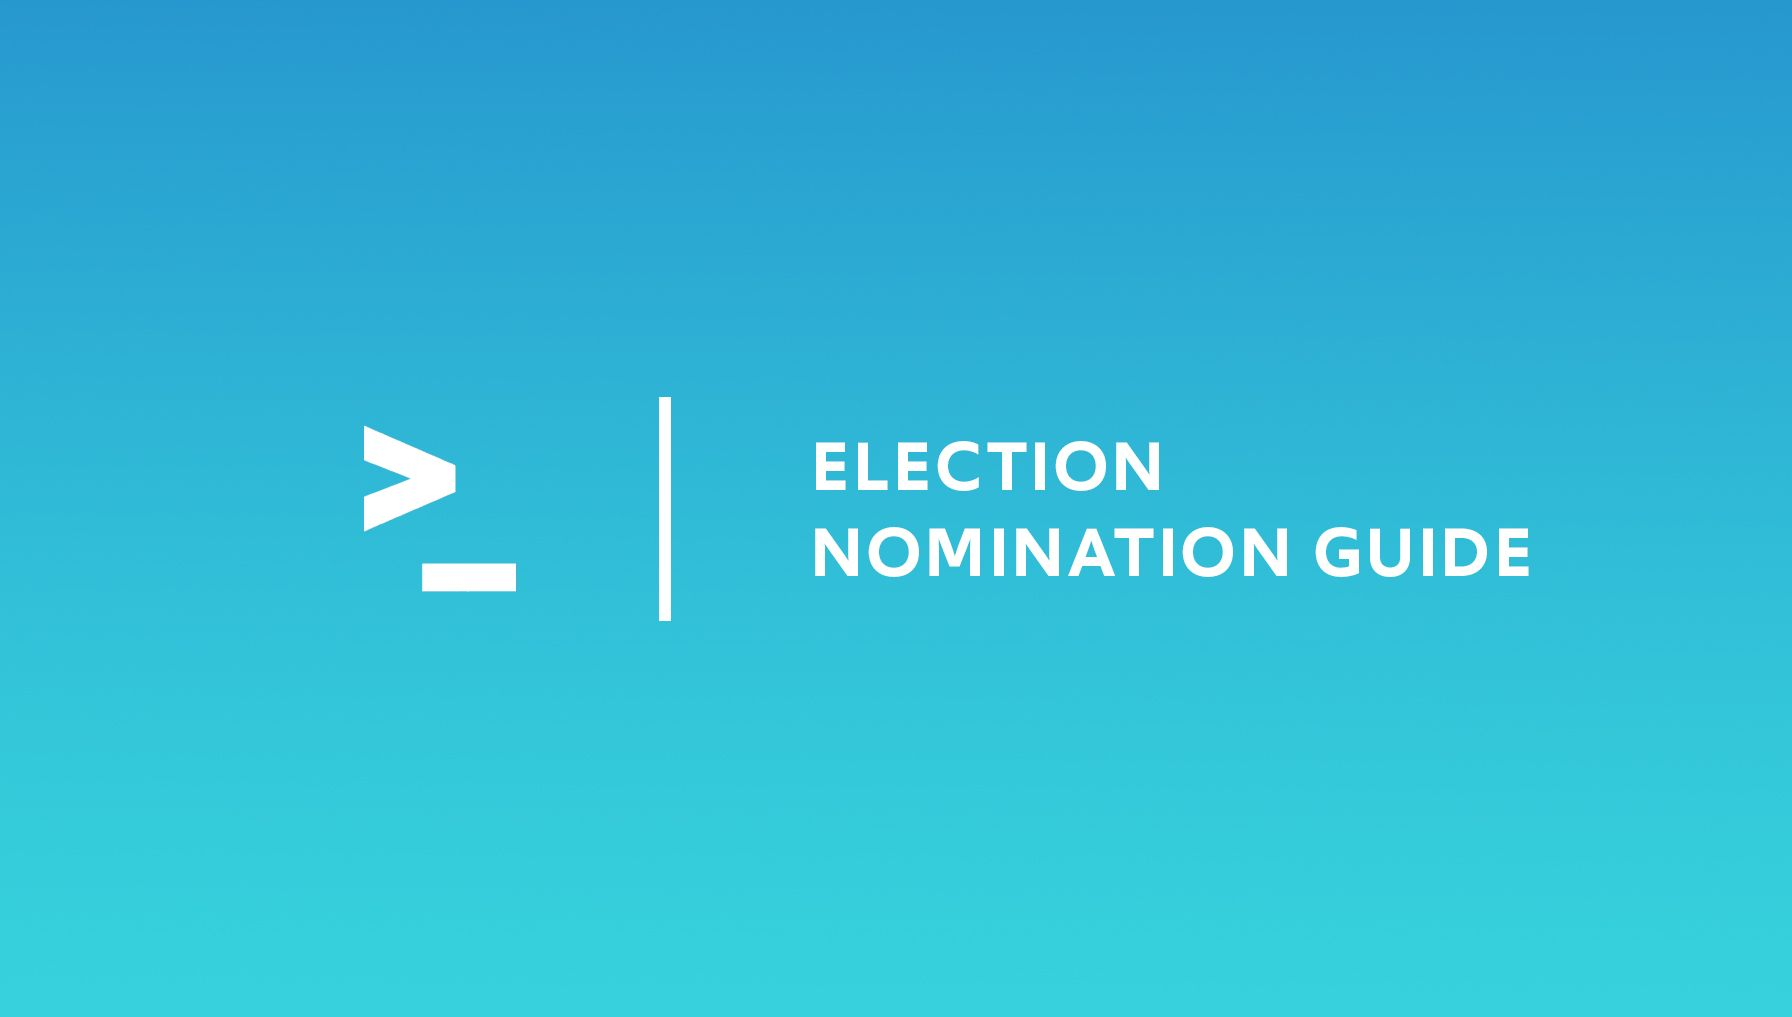 Election Nomination Guide